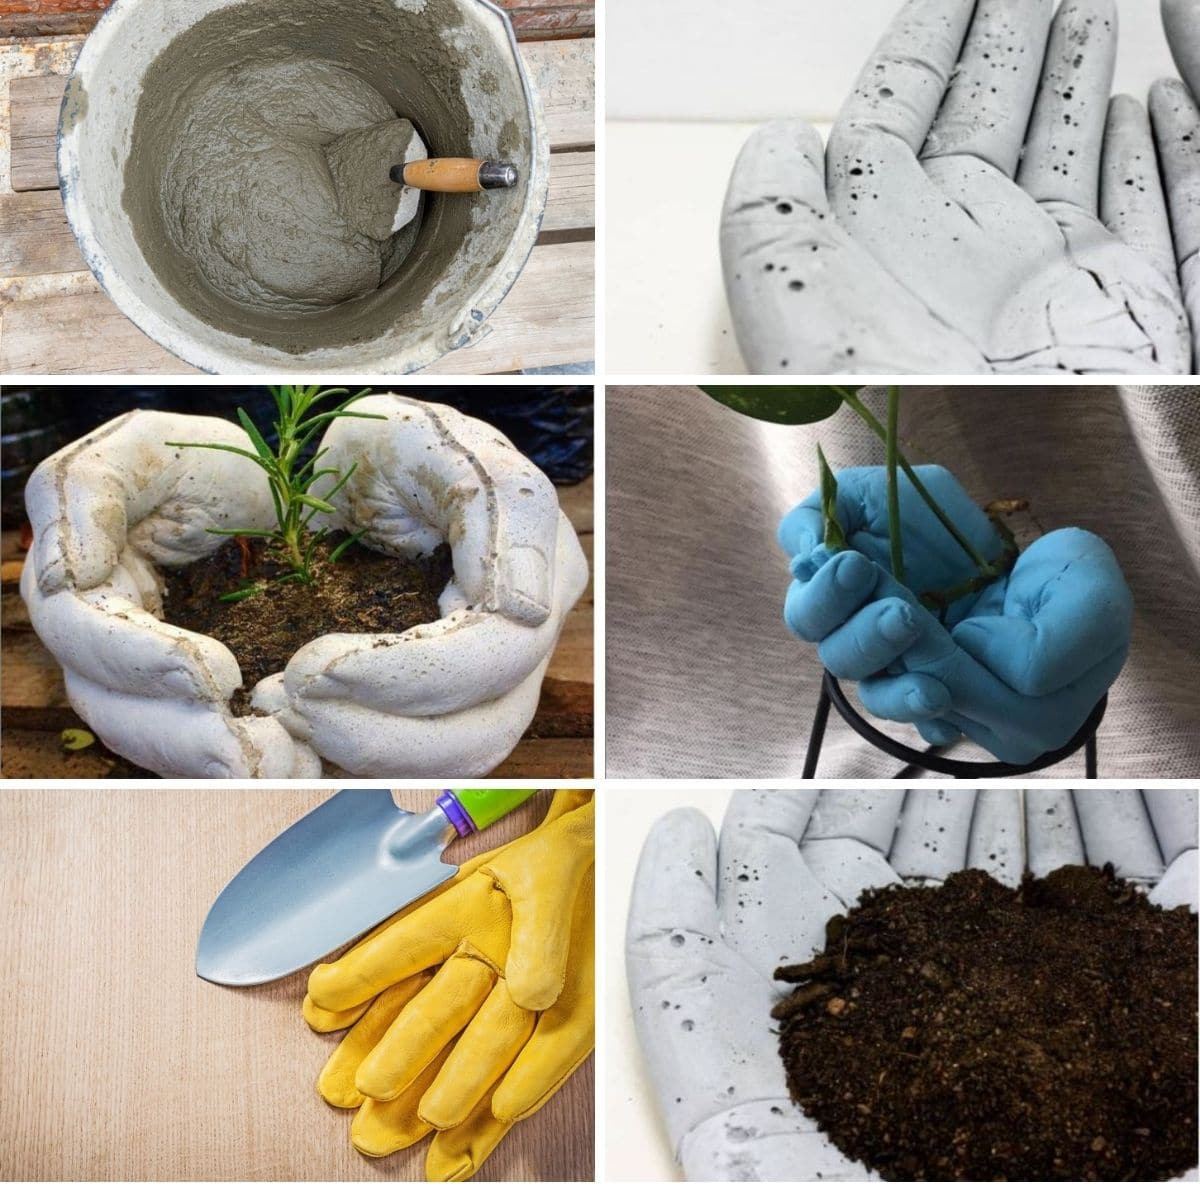 Steps showing how to make a concrete hand planter.